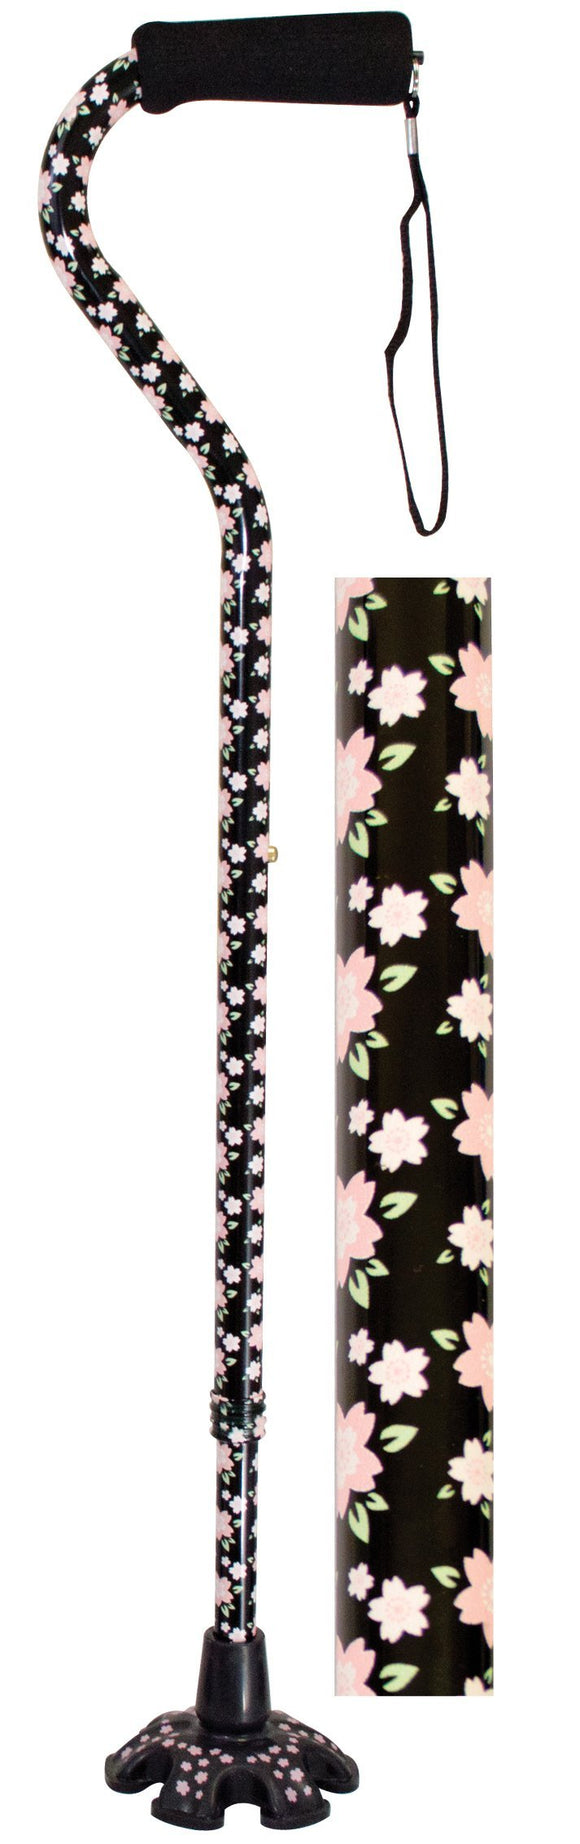 W1343P Couture Offset Cane with Matching Tip - Pink Floral